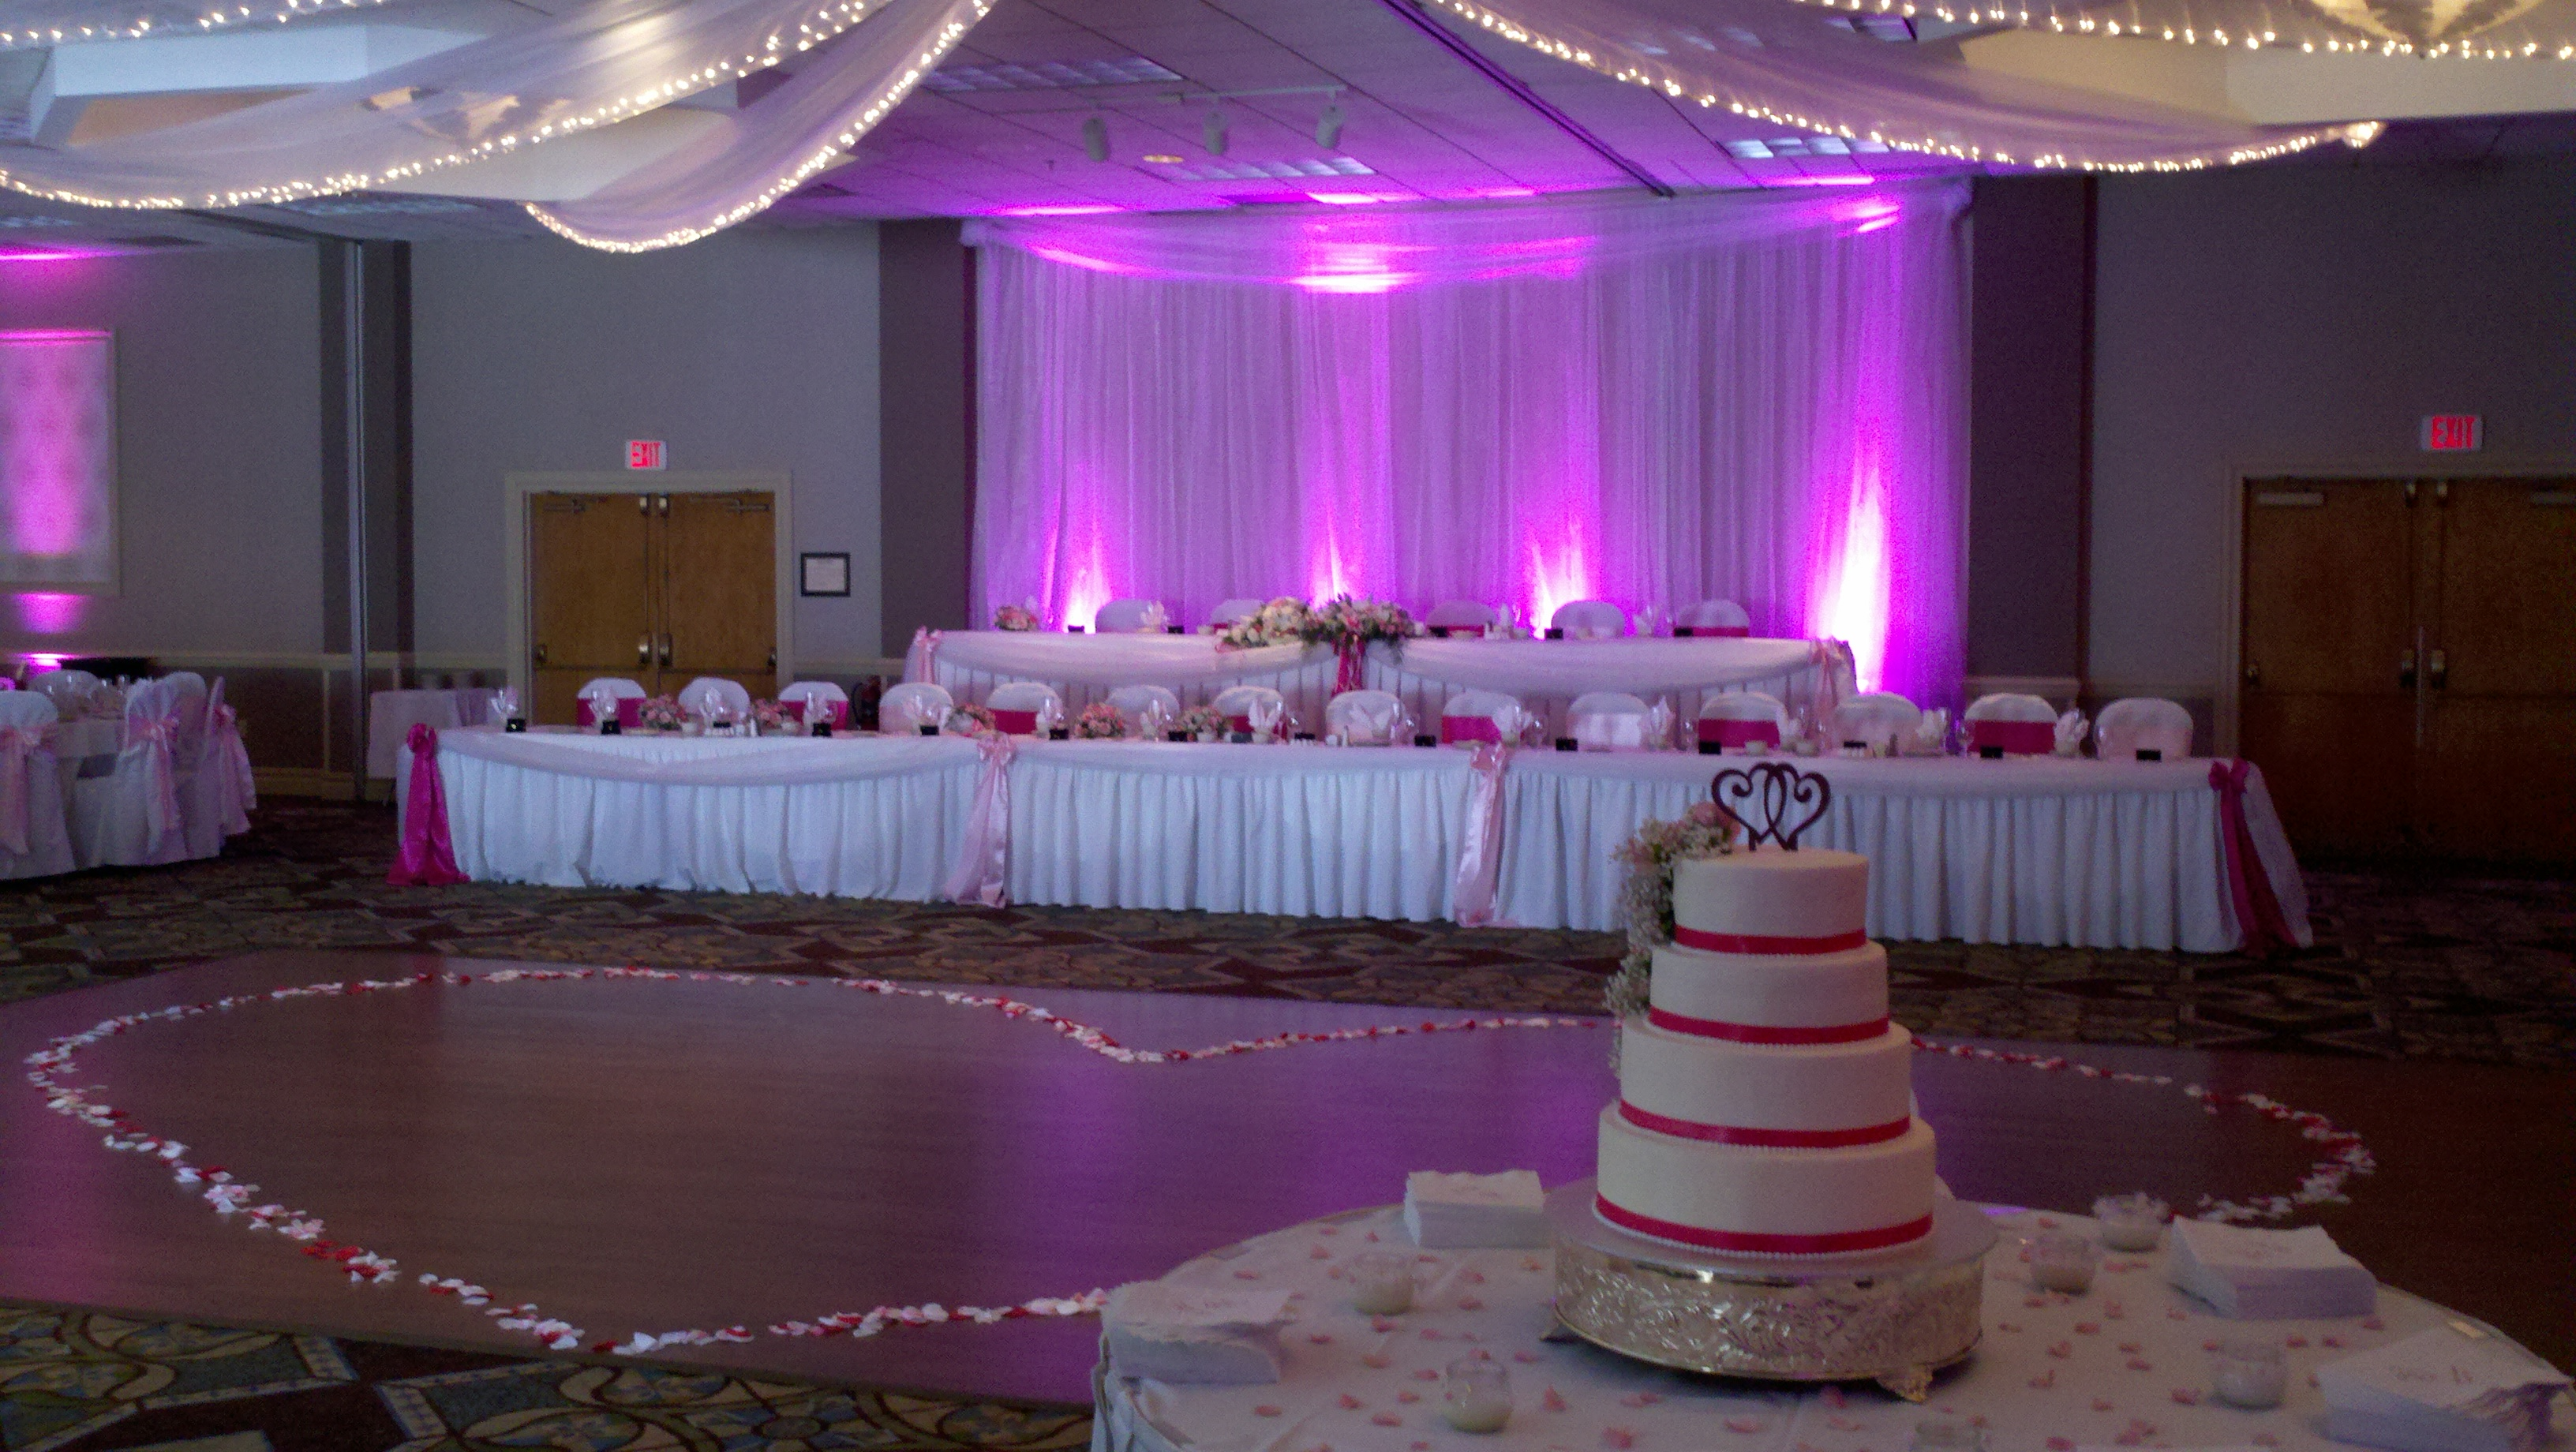 Uplights For A Wedding Reception At The Mckinley Holiday Inn Arena